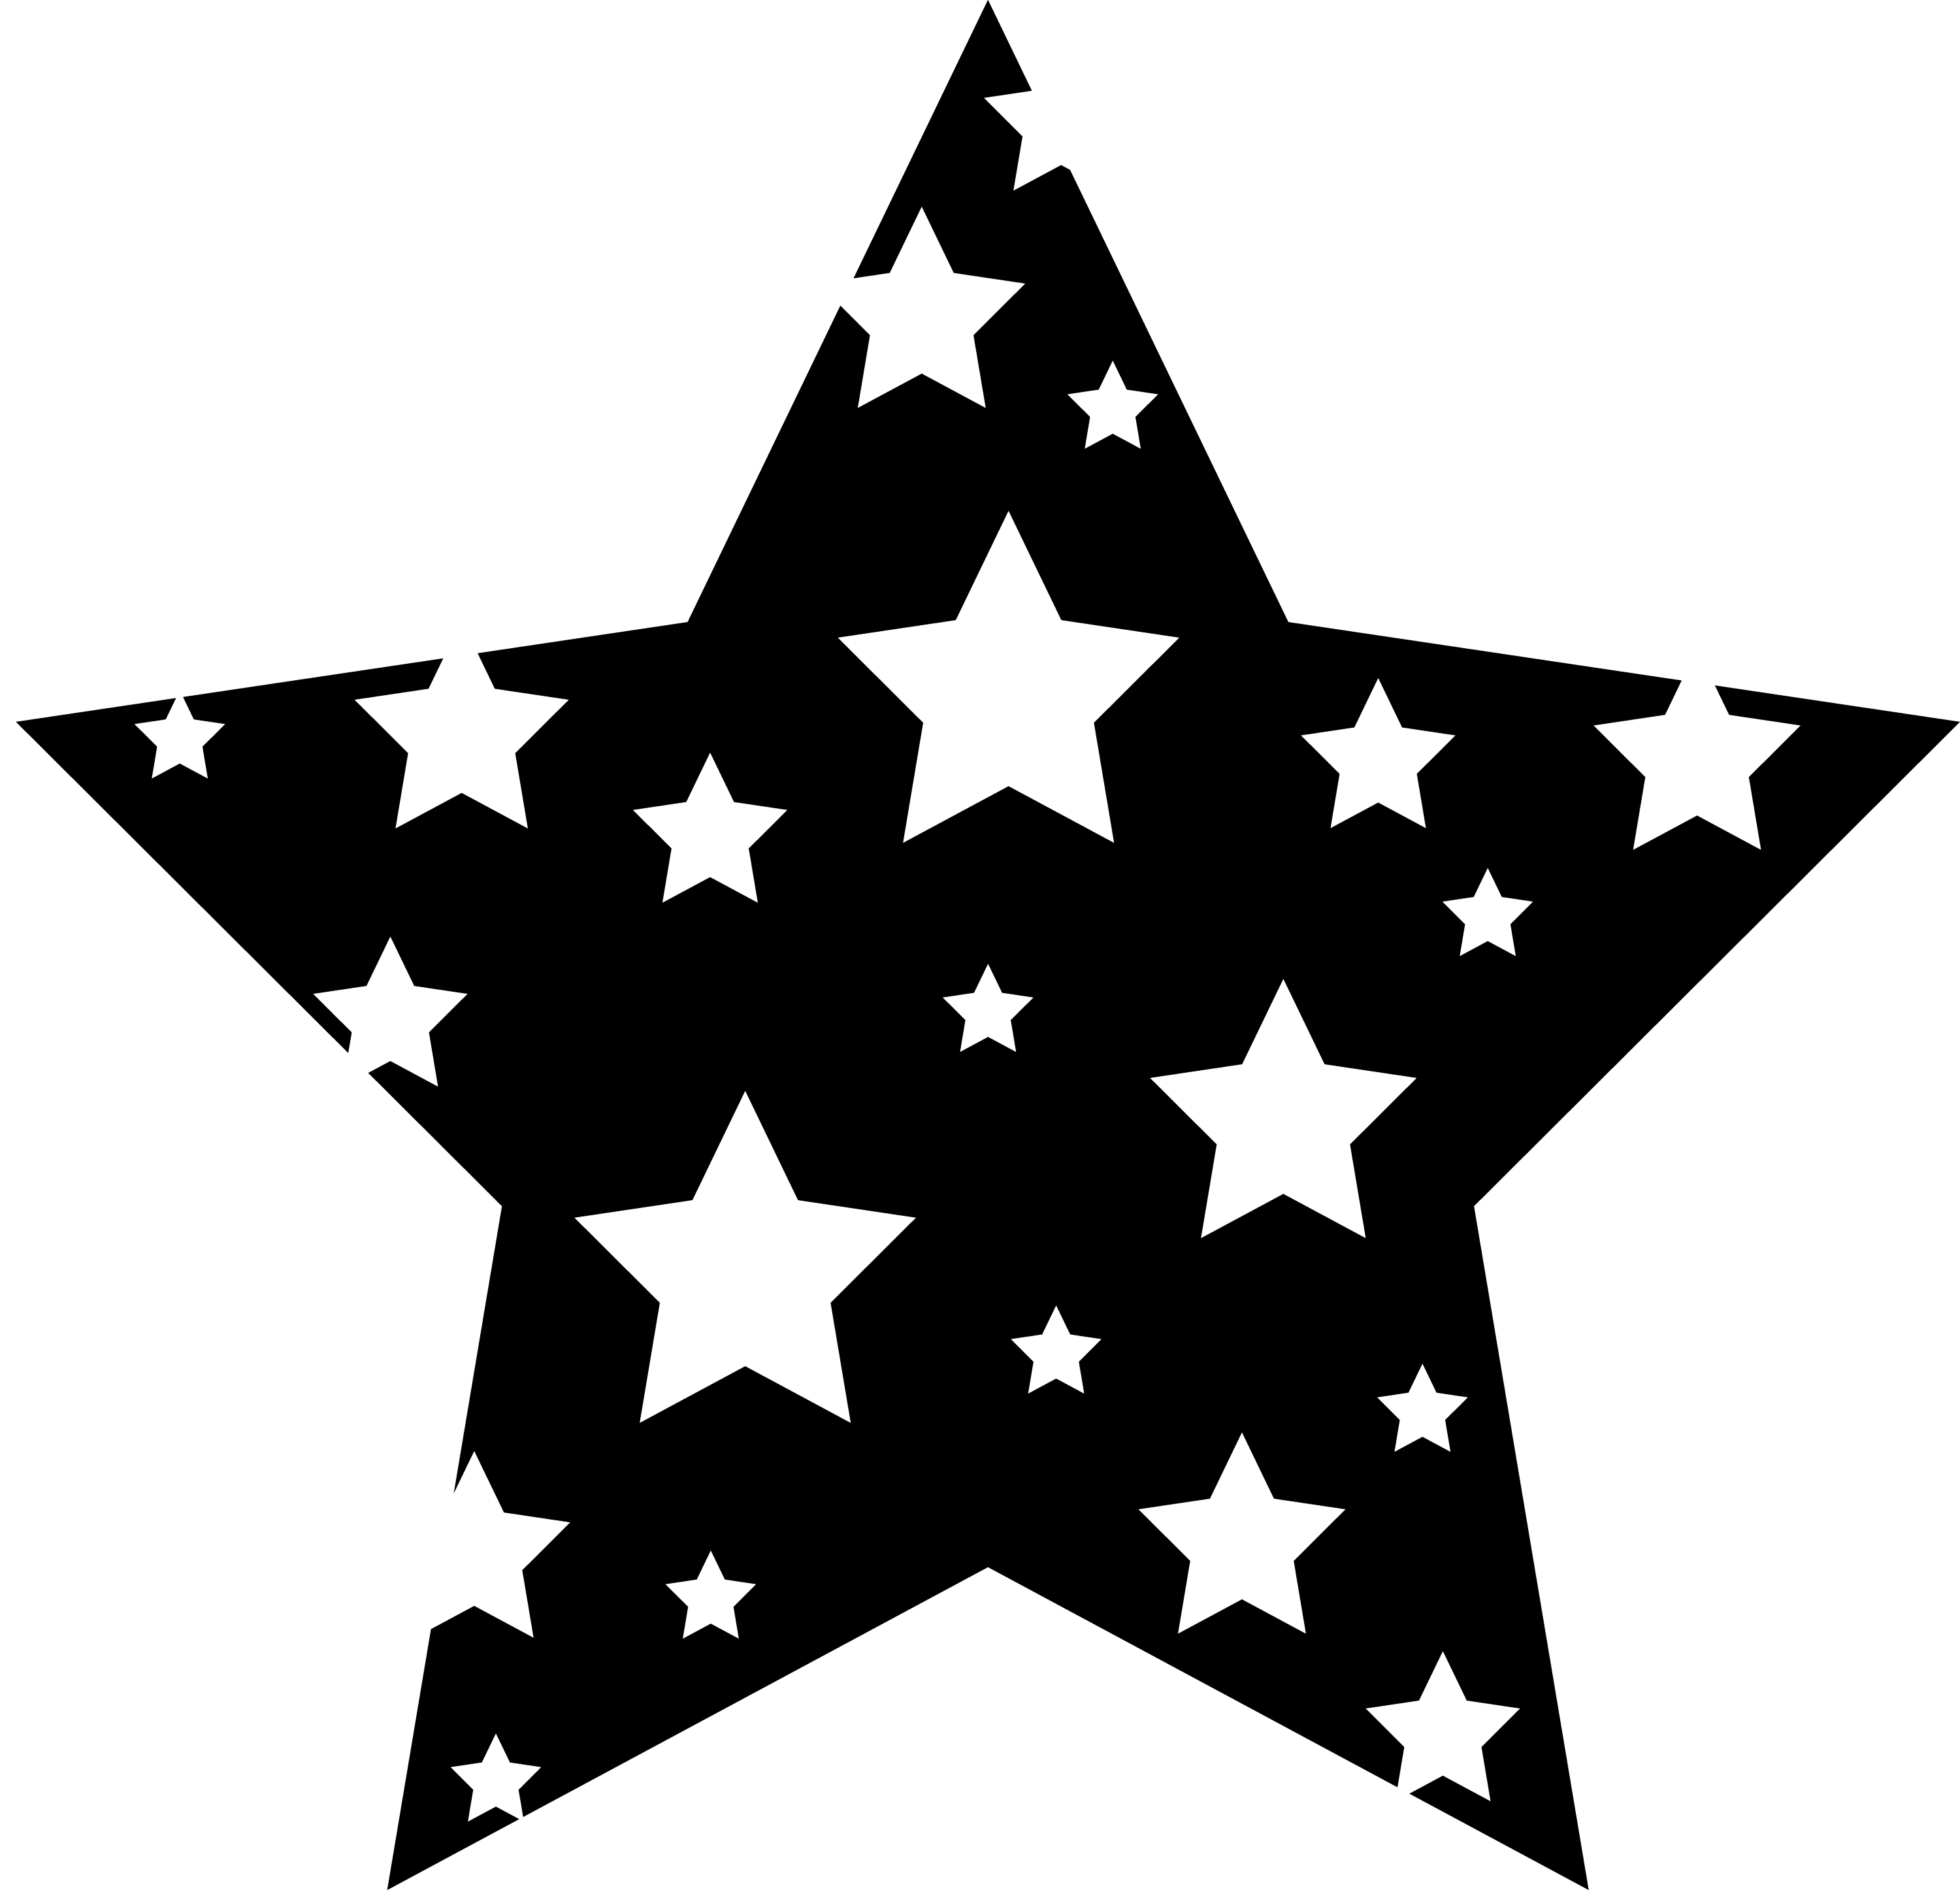 Black and white patterned star